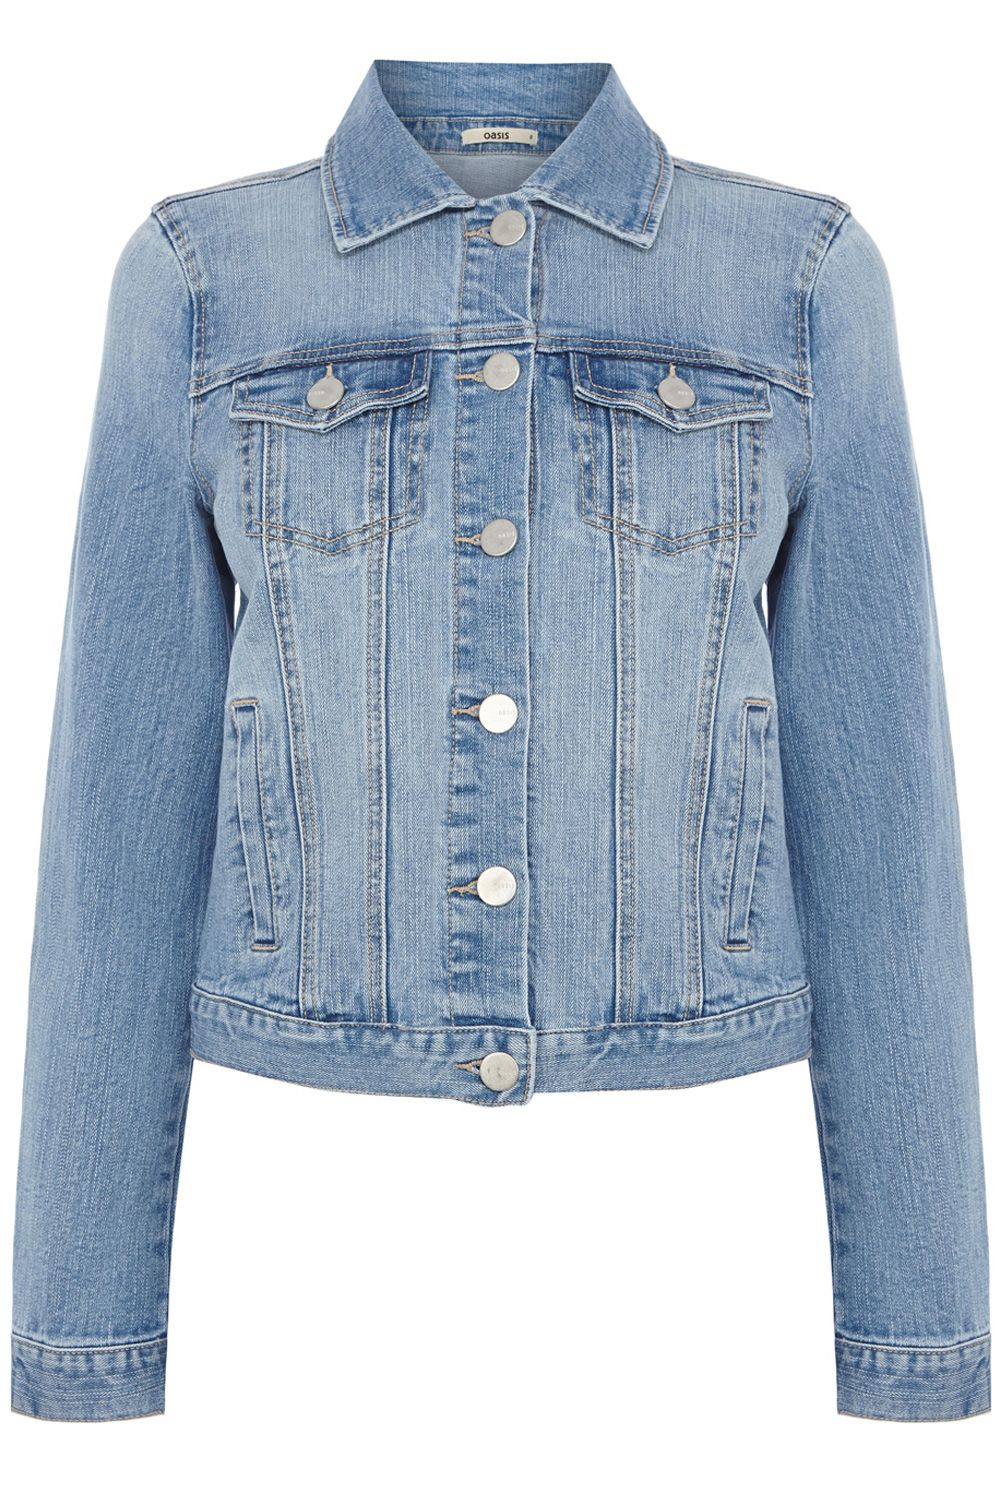 Carly pale wash denim jacket